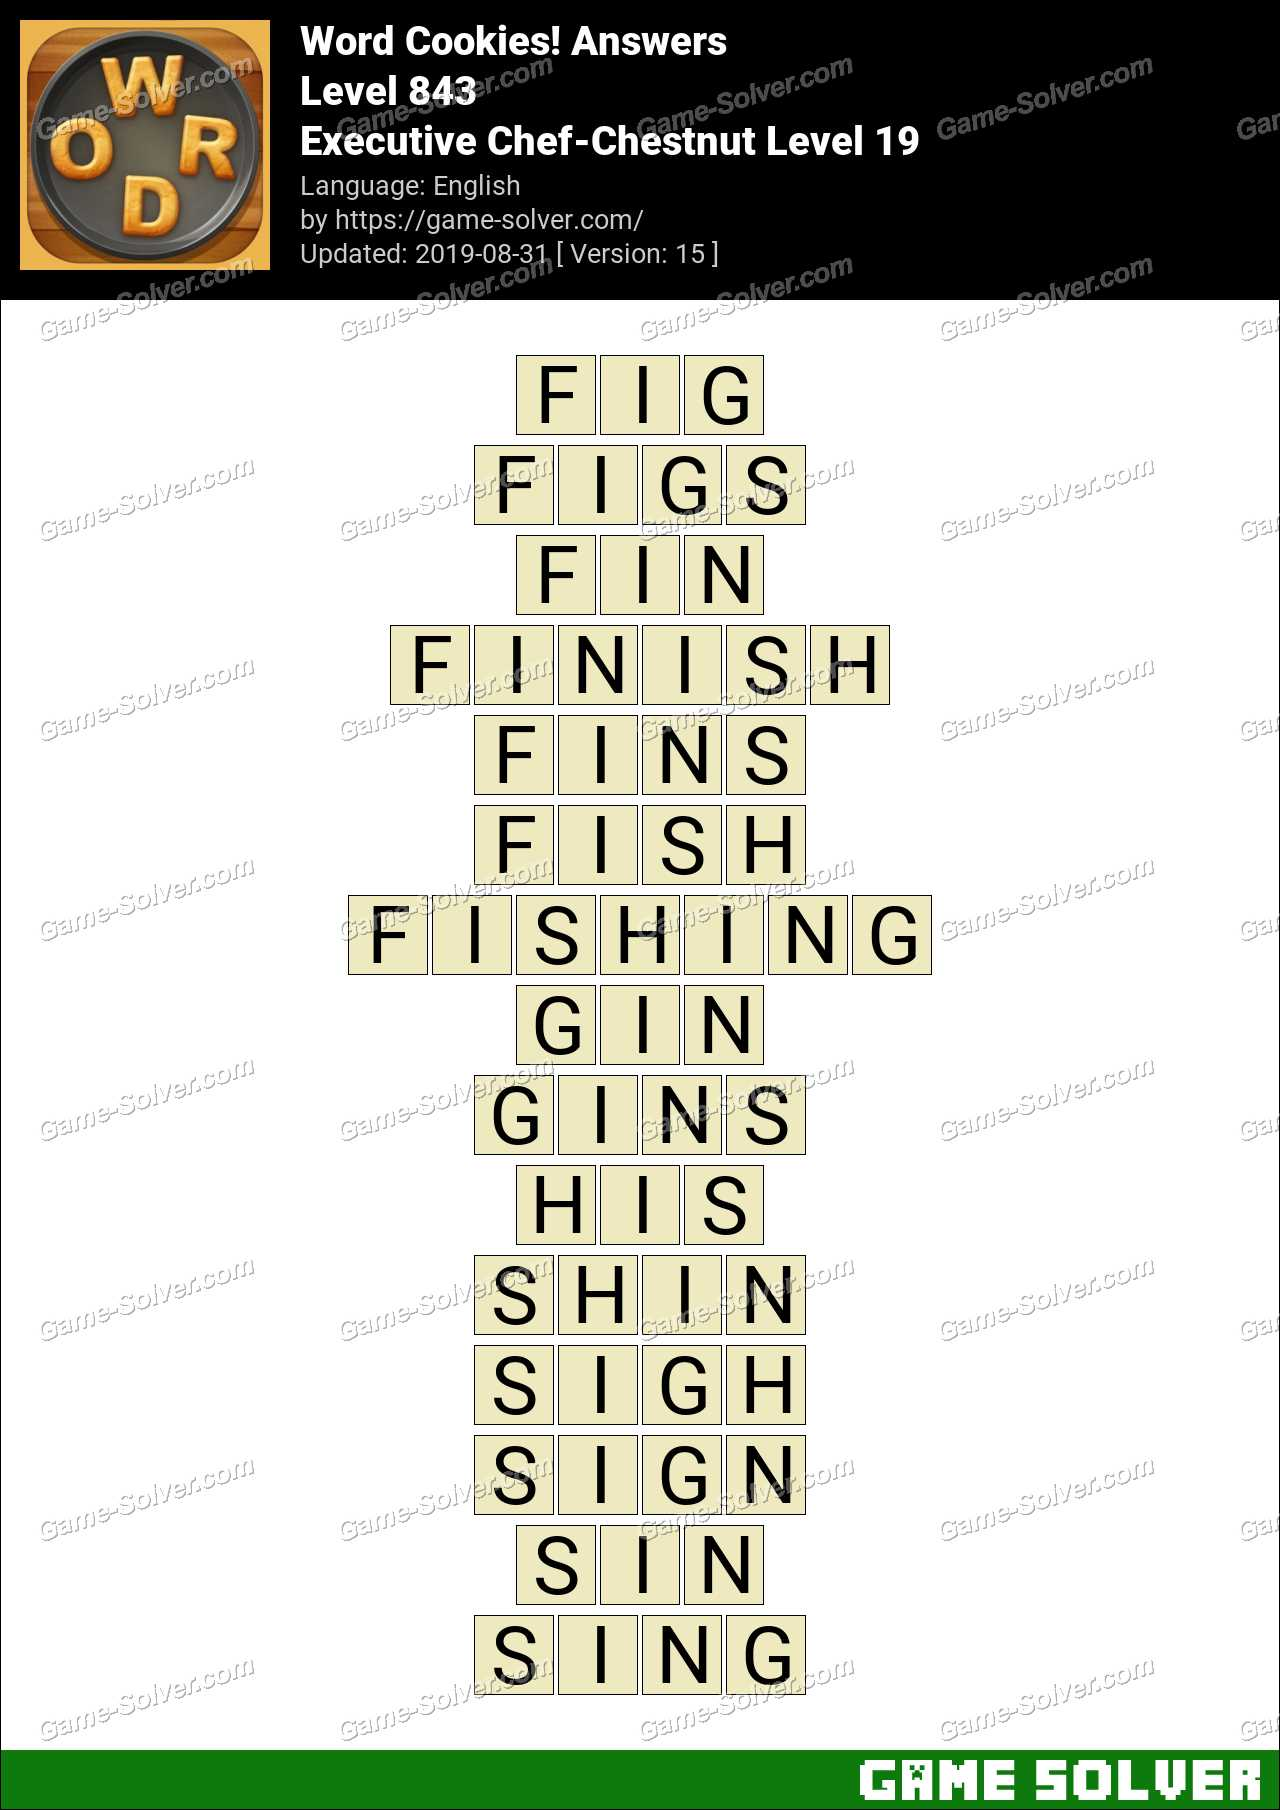 Word Cookies Executive Chef-Chestnut Level 19 Answers